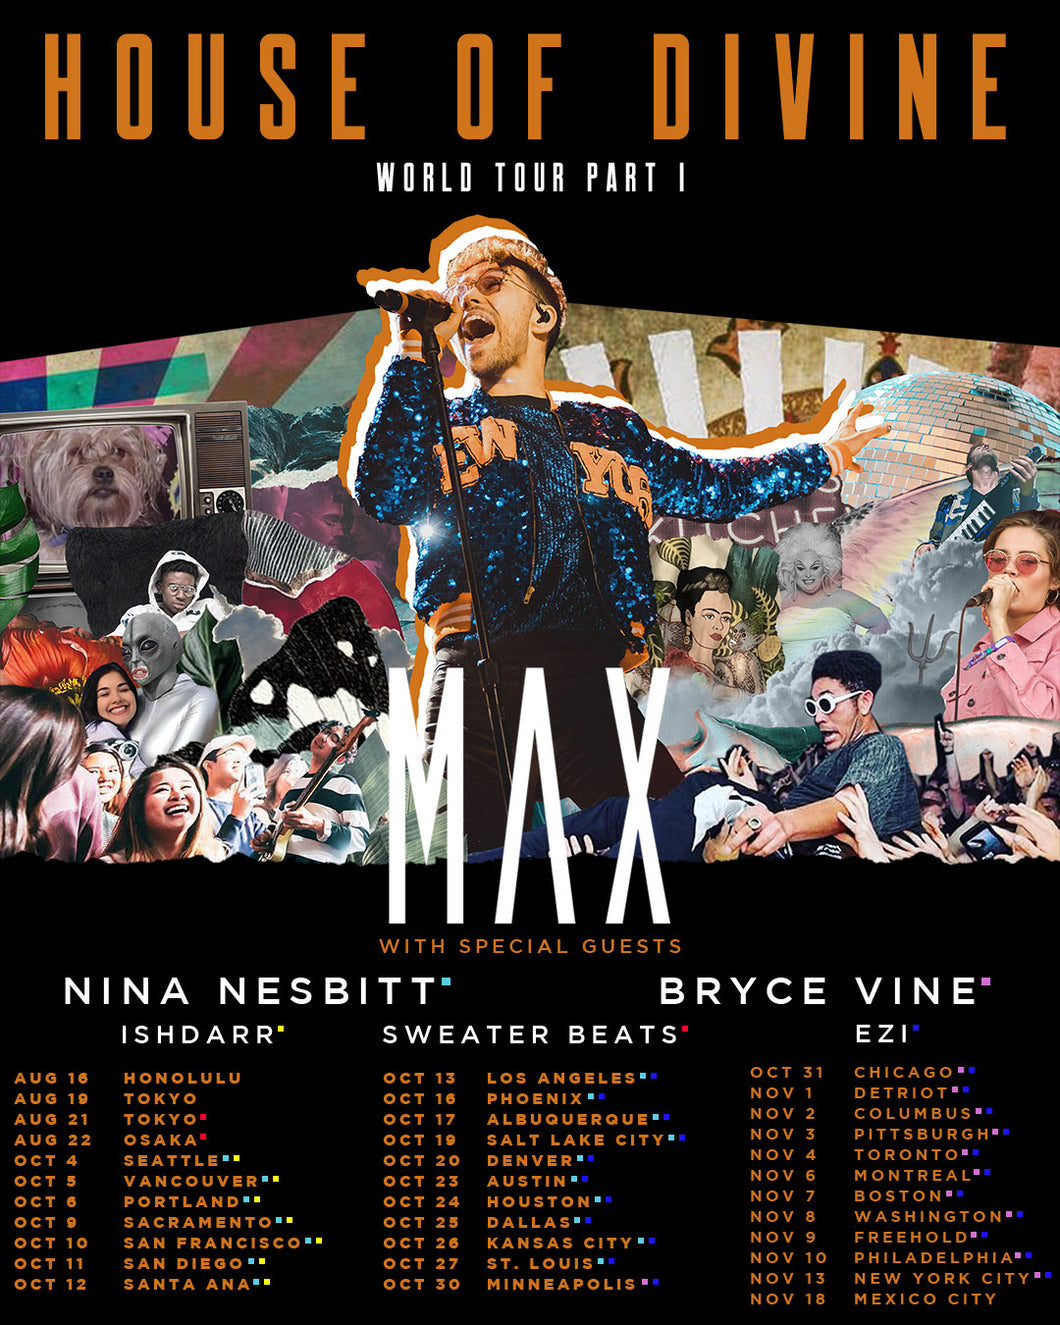 10/10/ 2018 - San Francisco, CA - Slim's MAX Ticketless VIP Upgrade